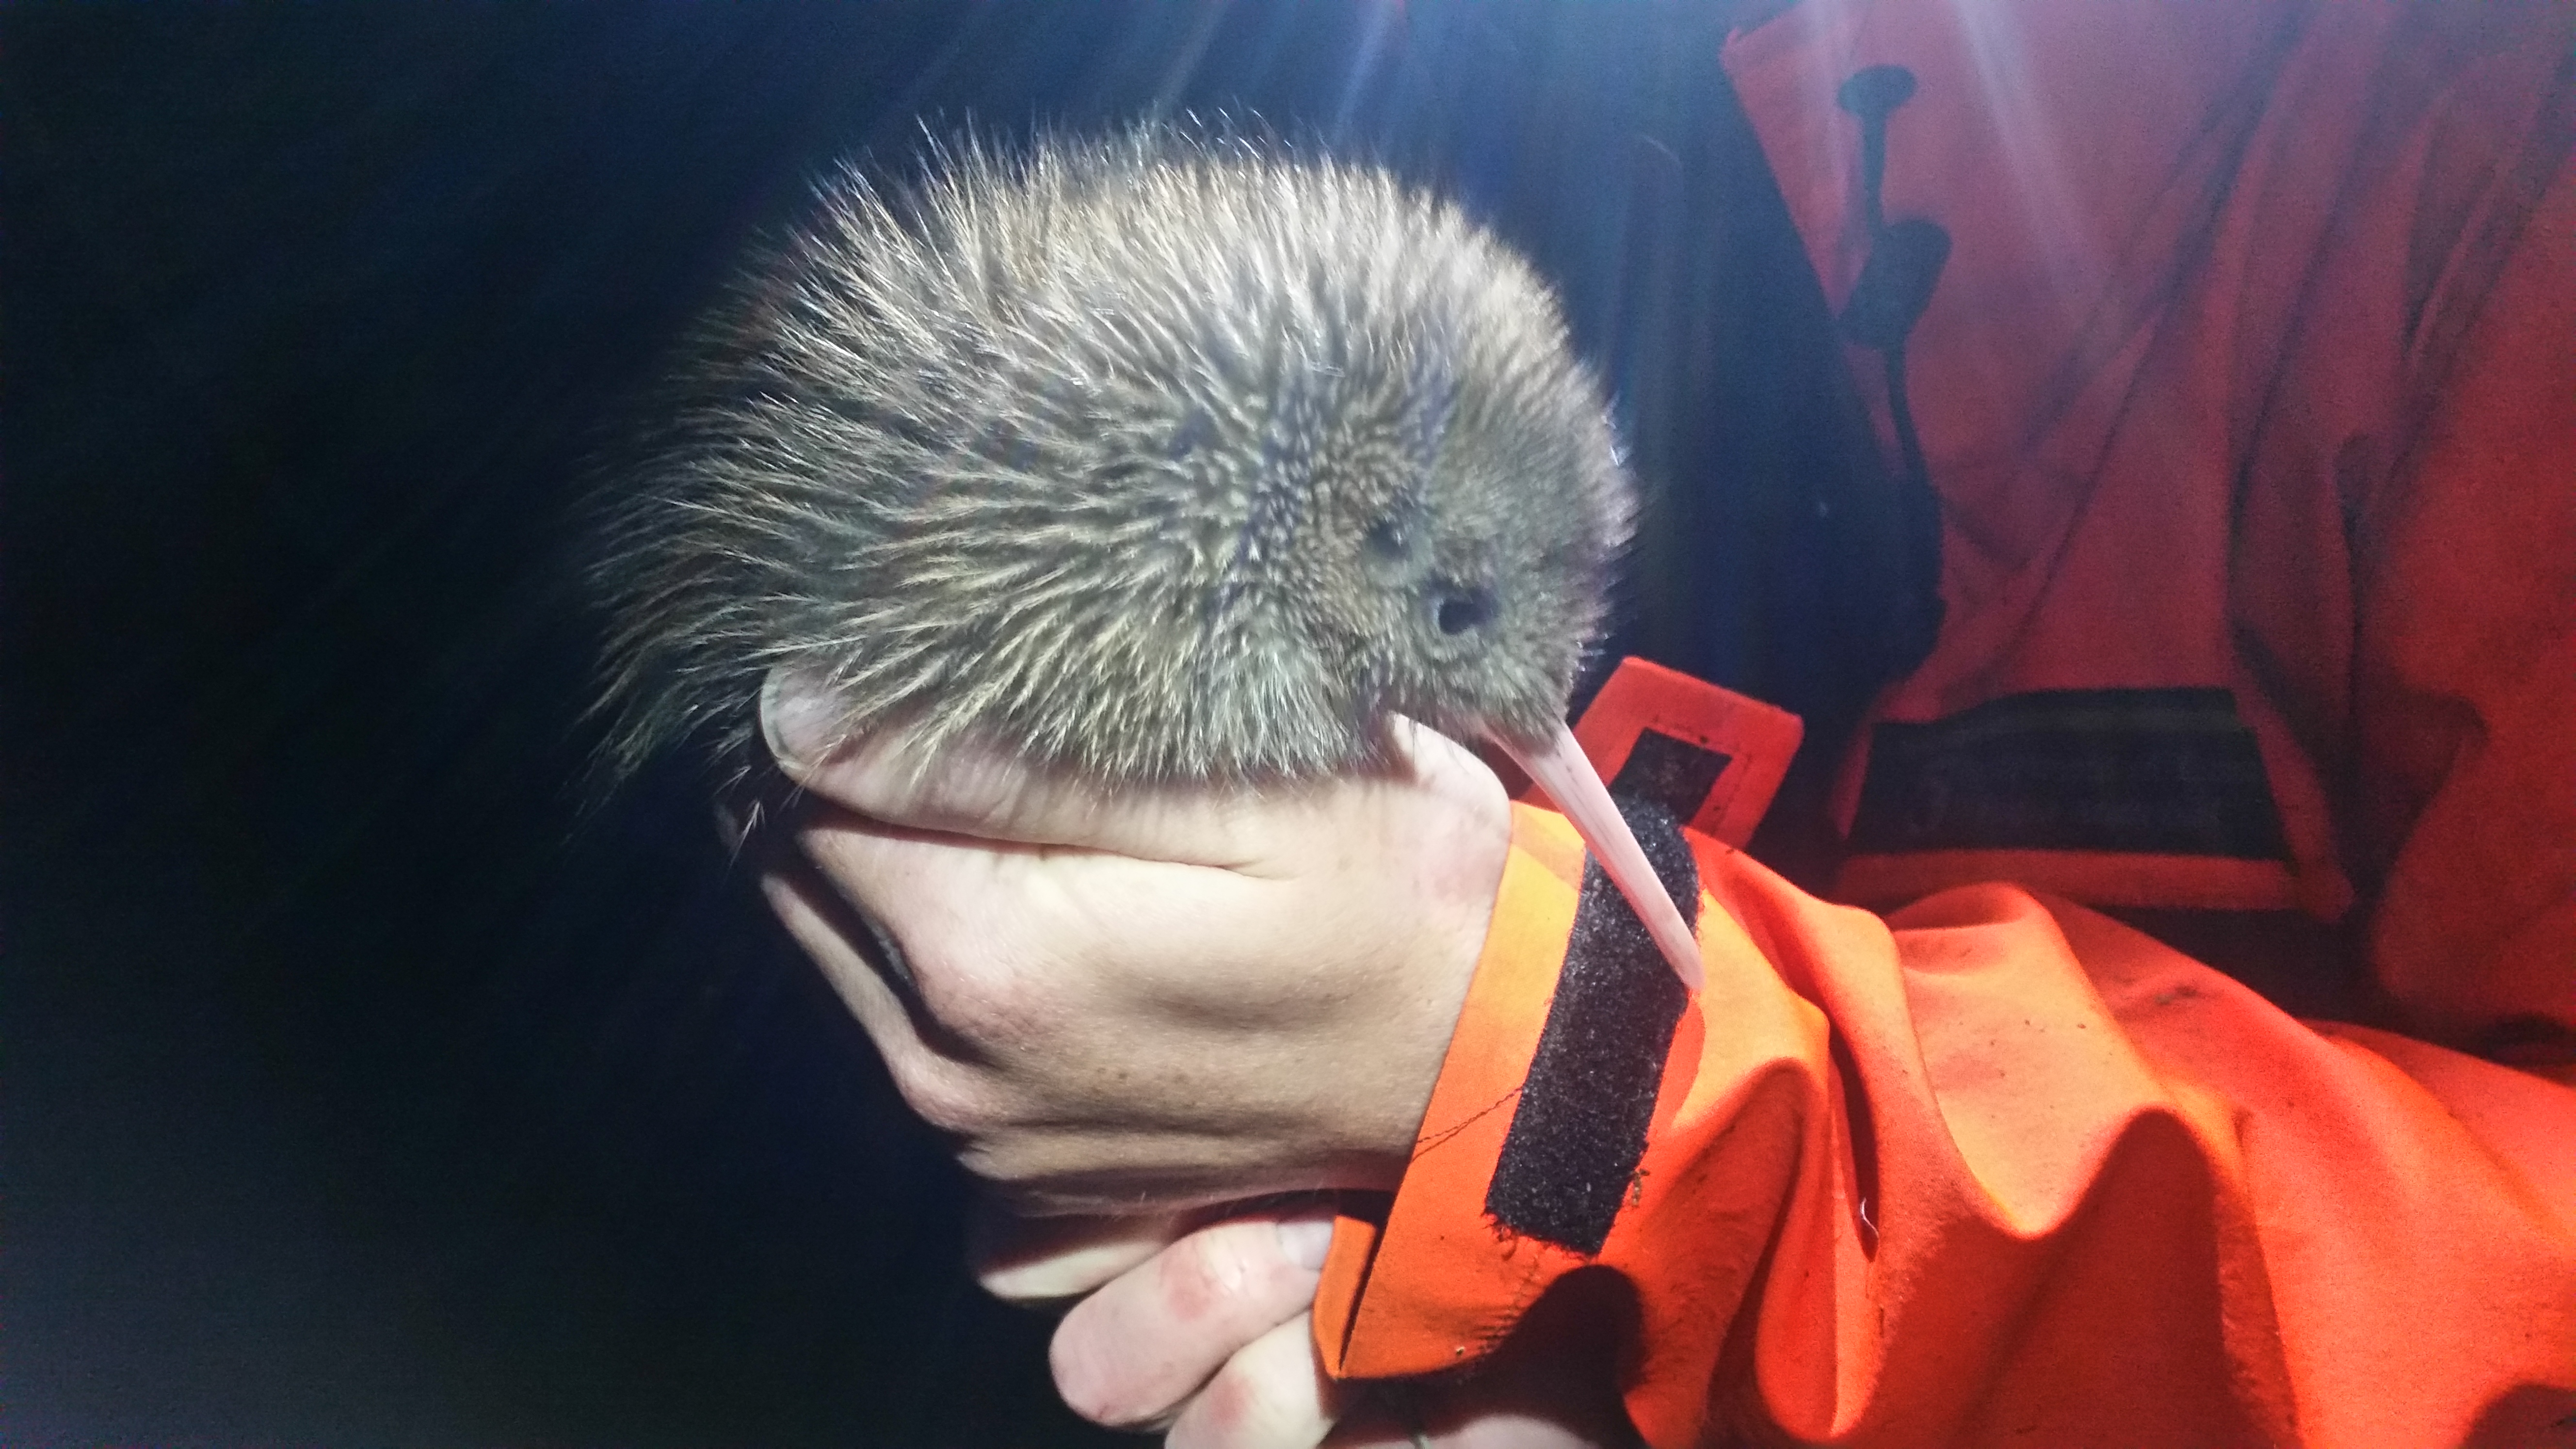 Blog: Fiordland Kiwi Diaries: The first kiwi chick!